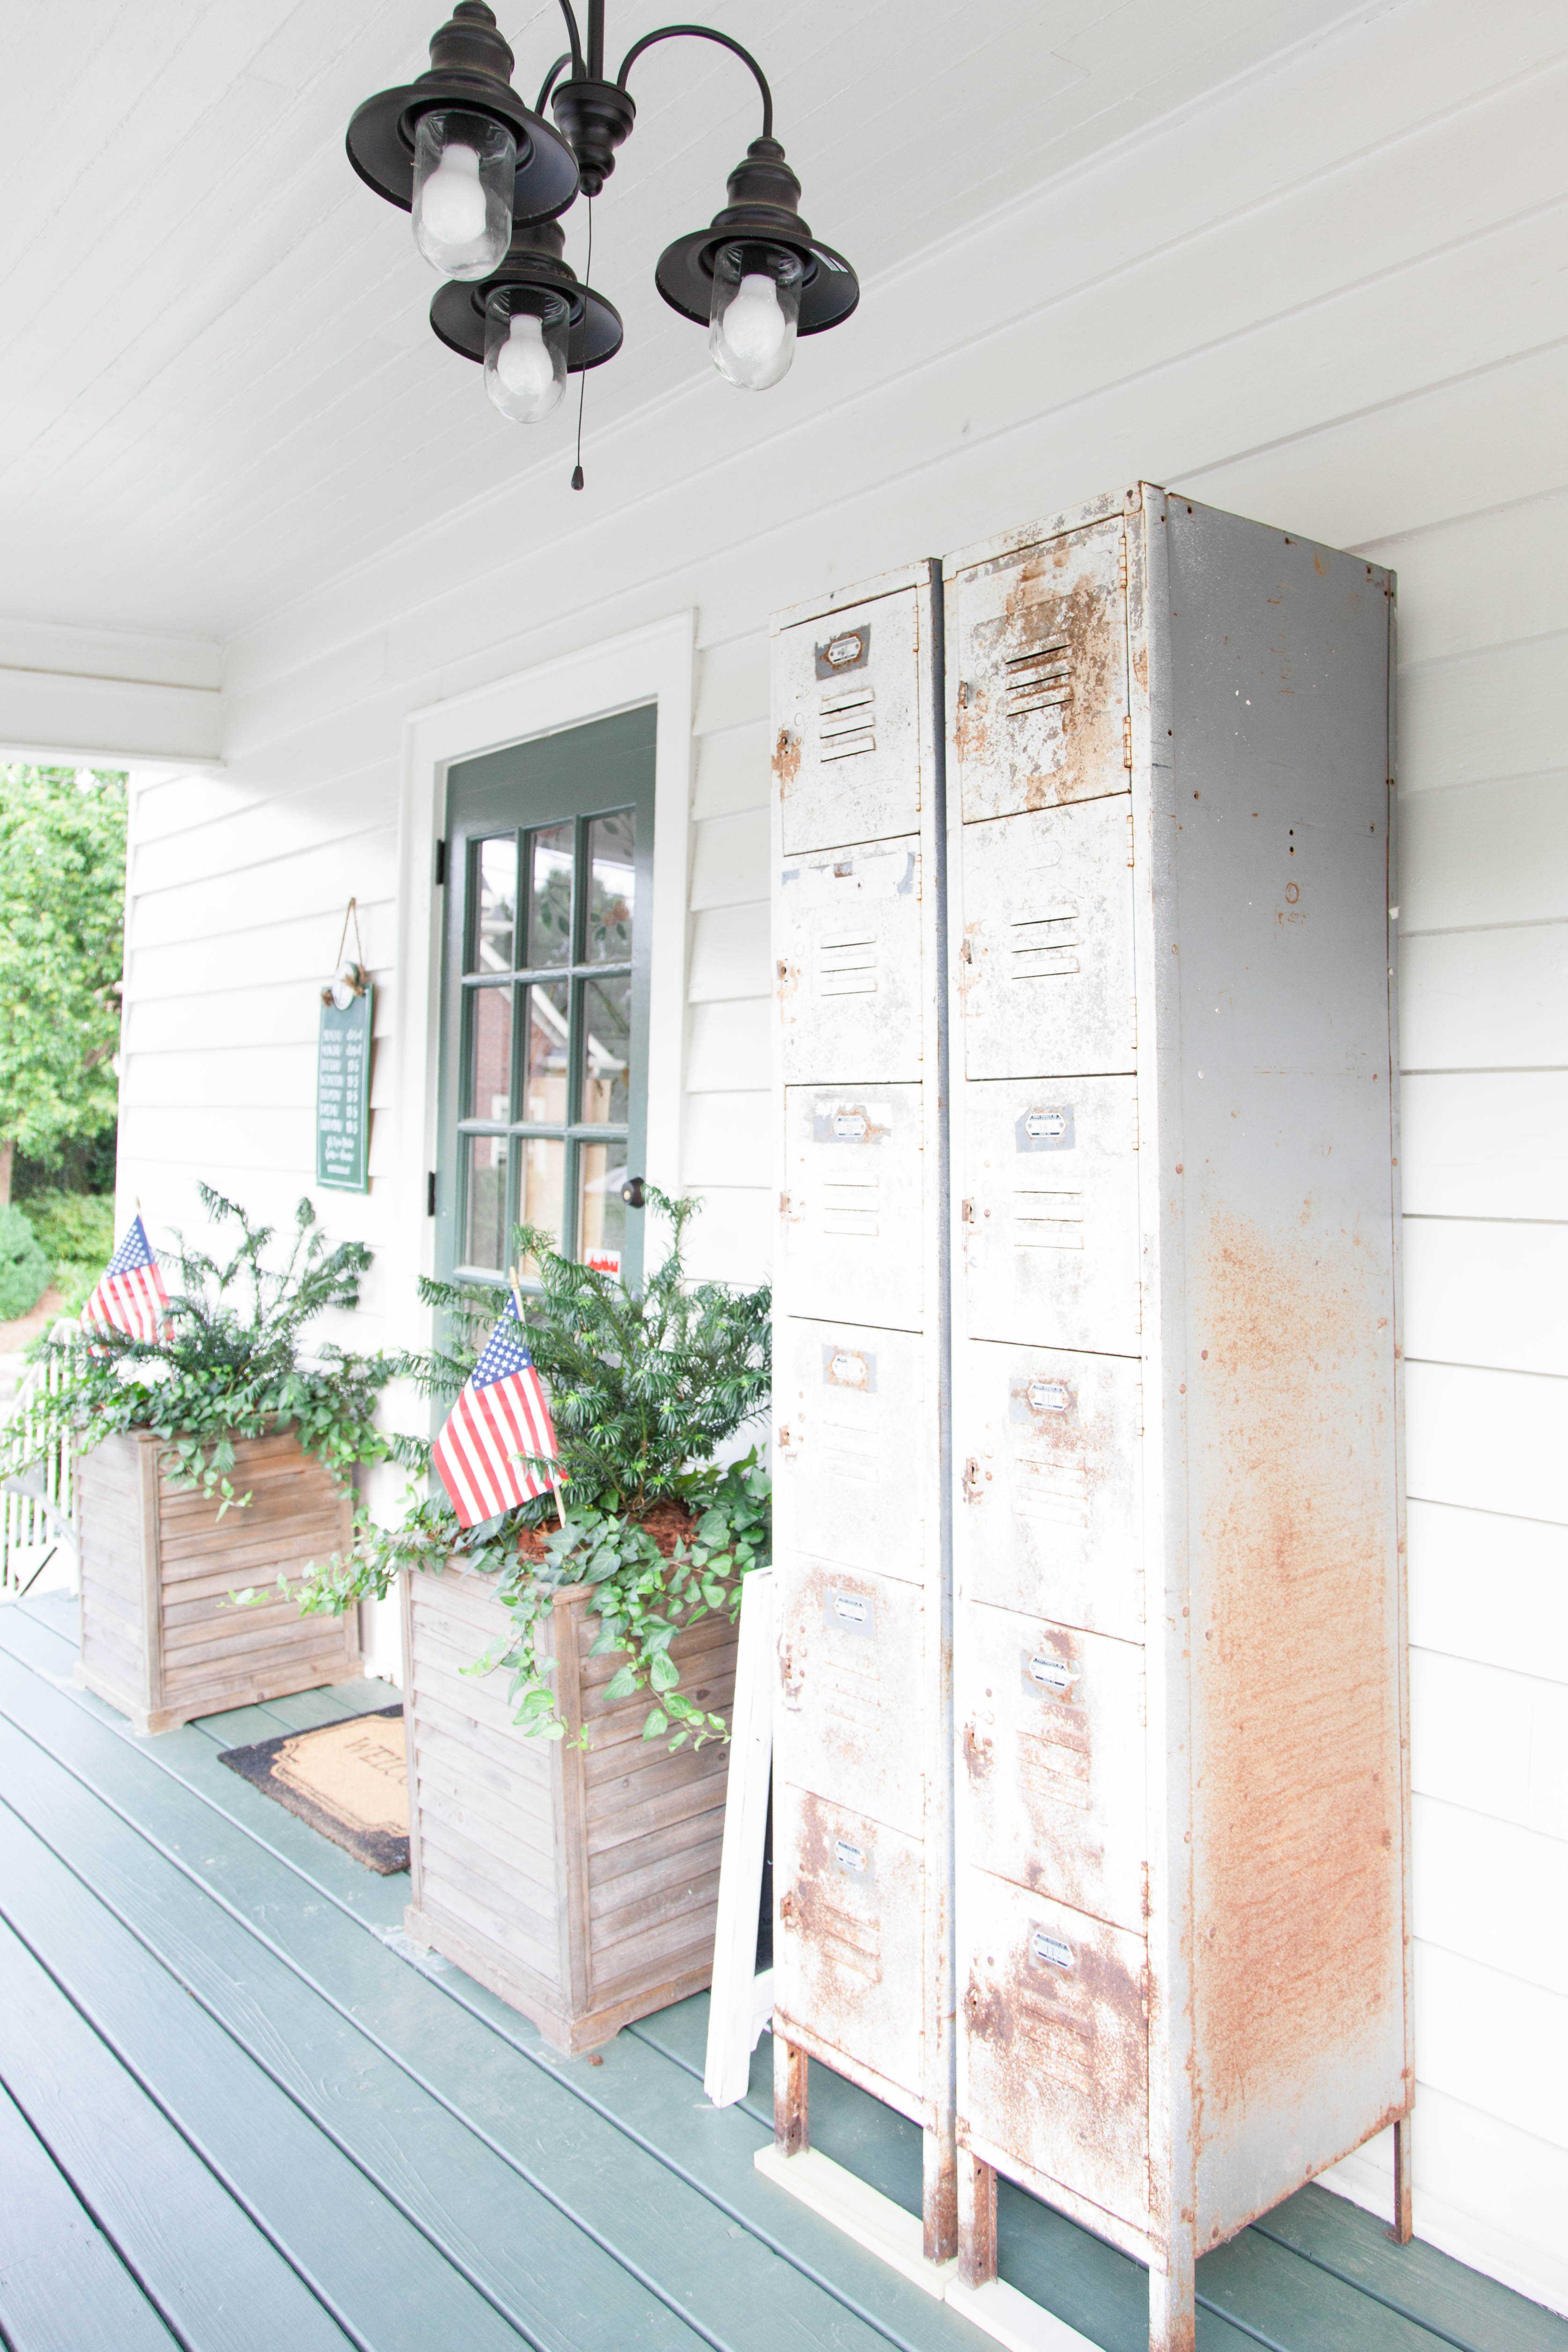 The Front Porch Market Lockers